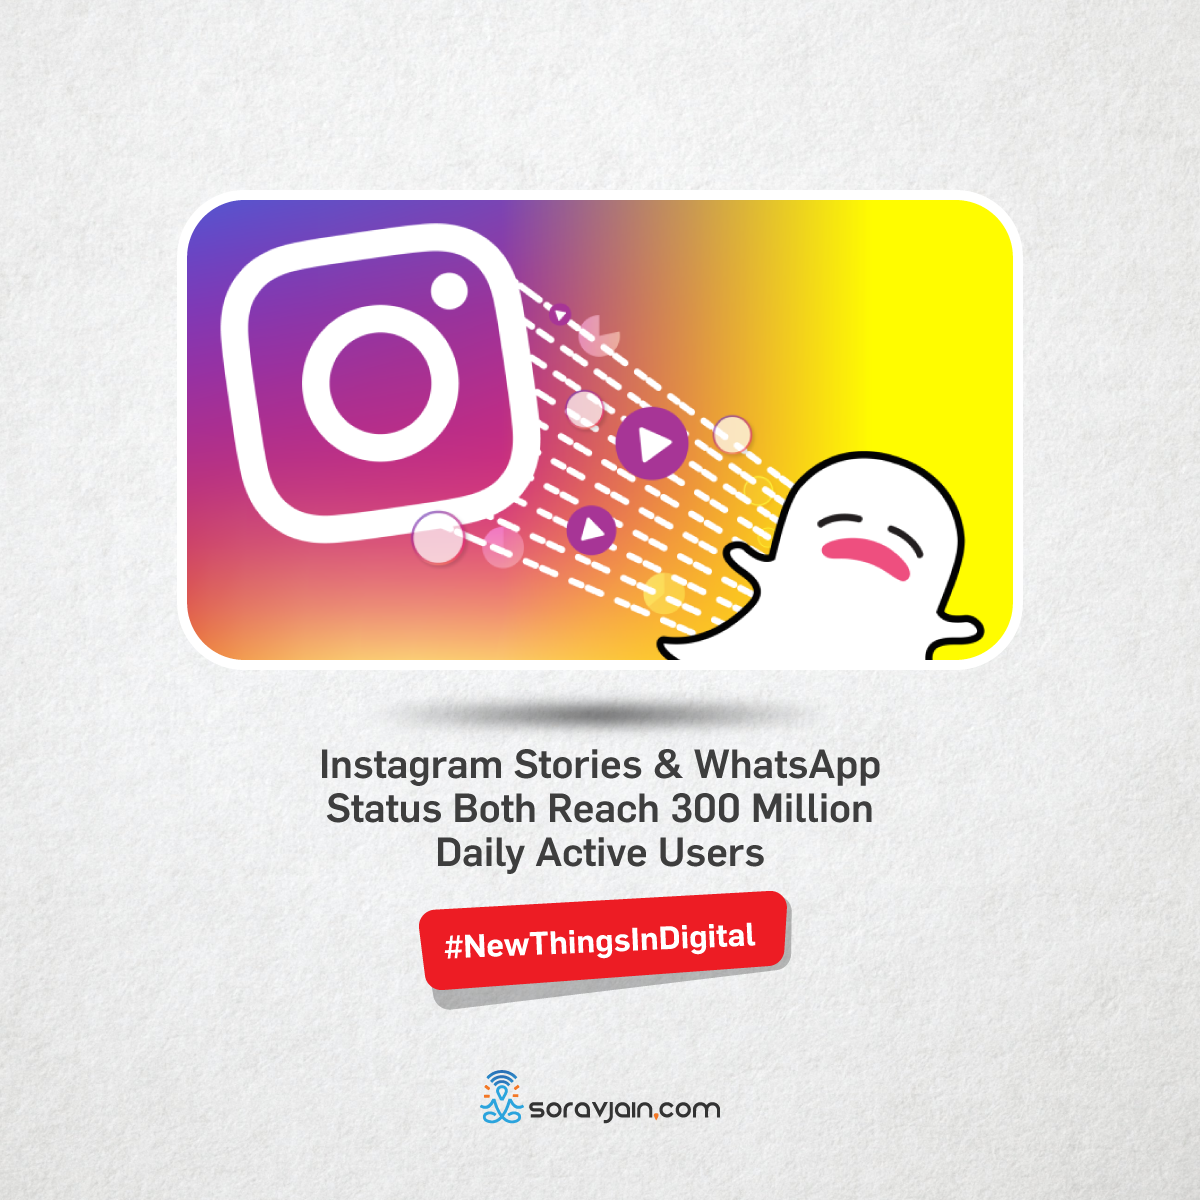 Instagram Stories & WhatsApp Status Both Reach 300 Million Daily Active Users